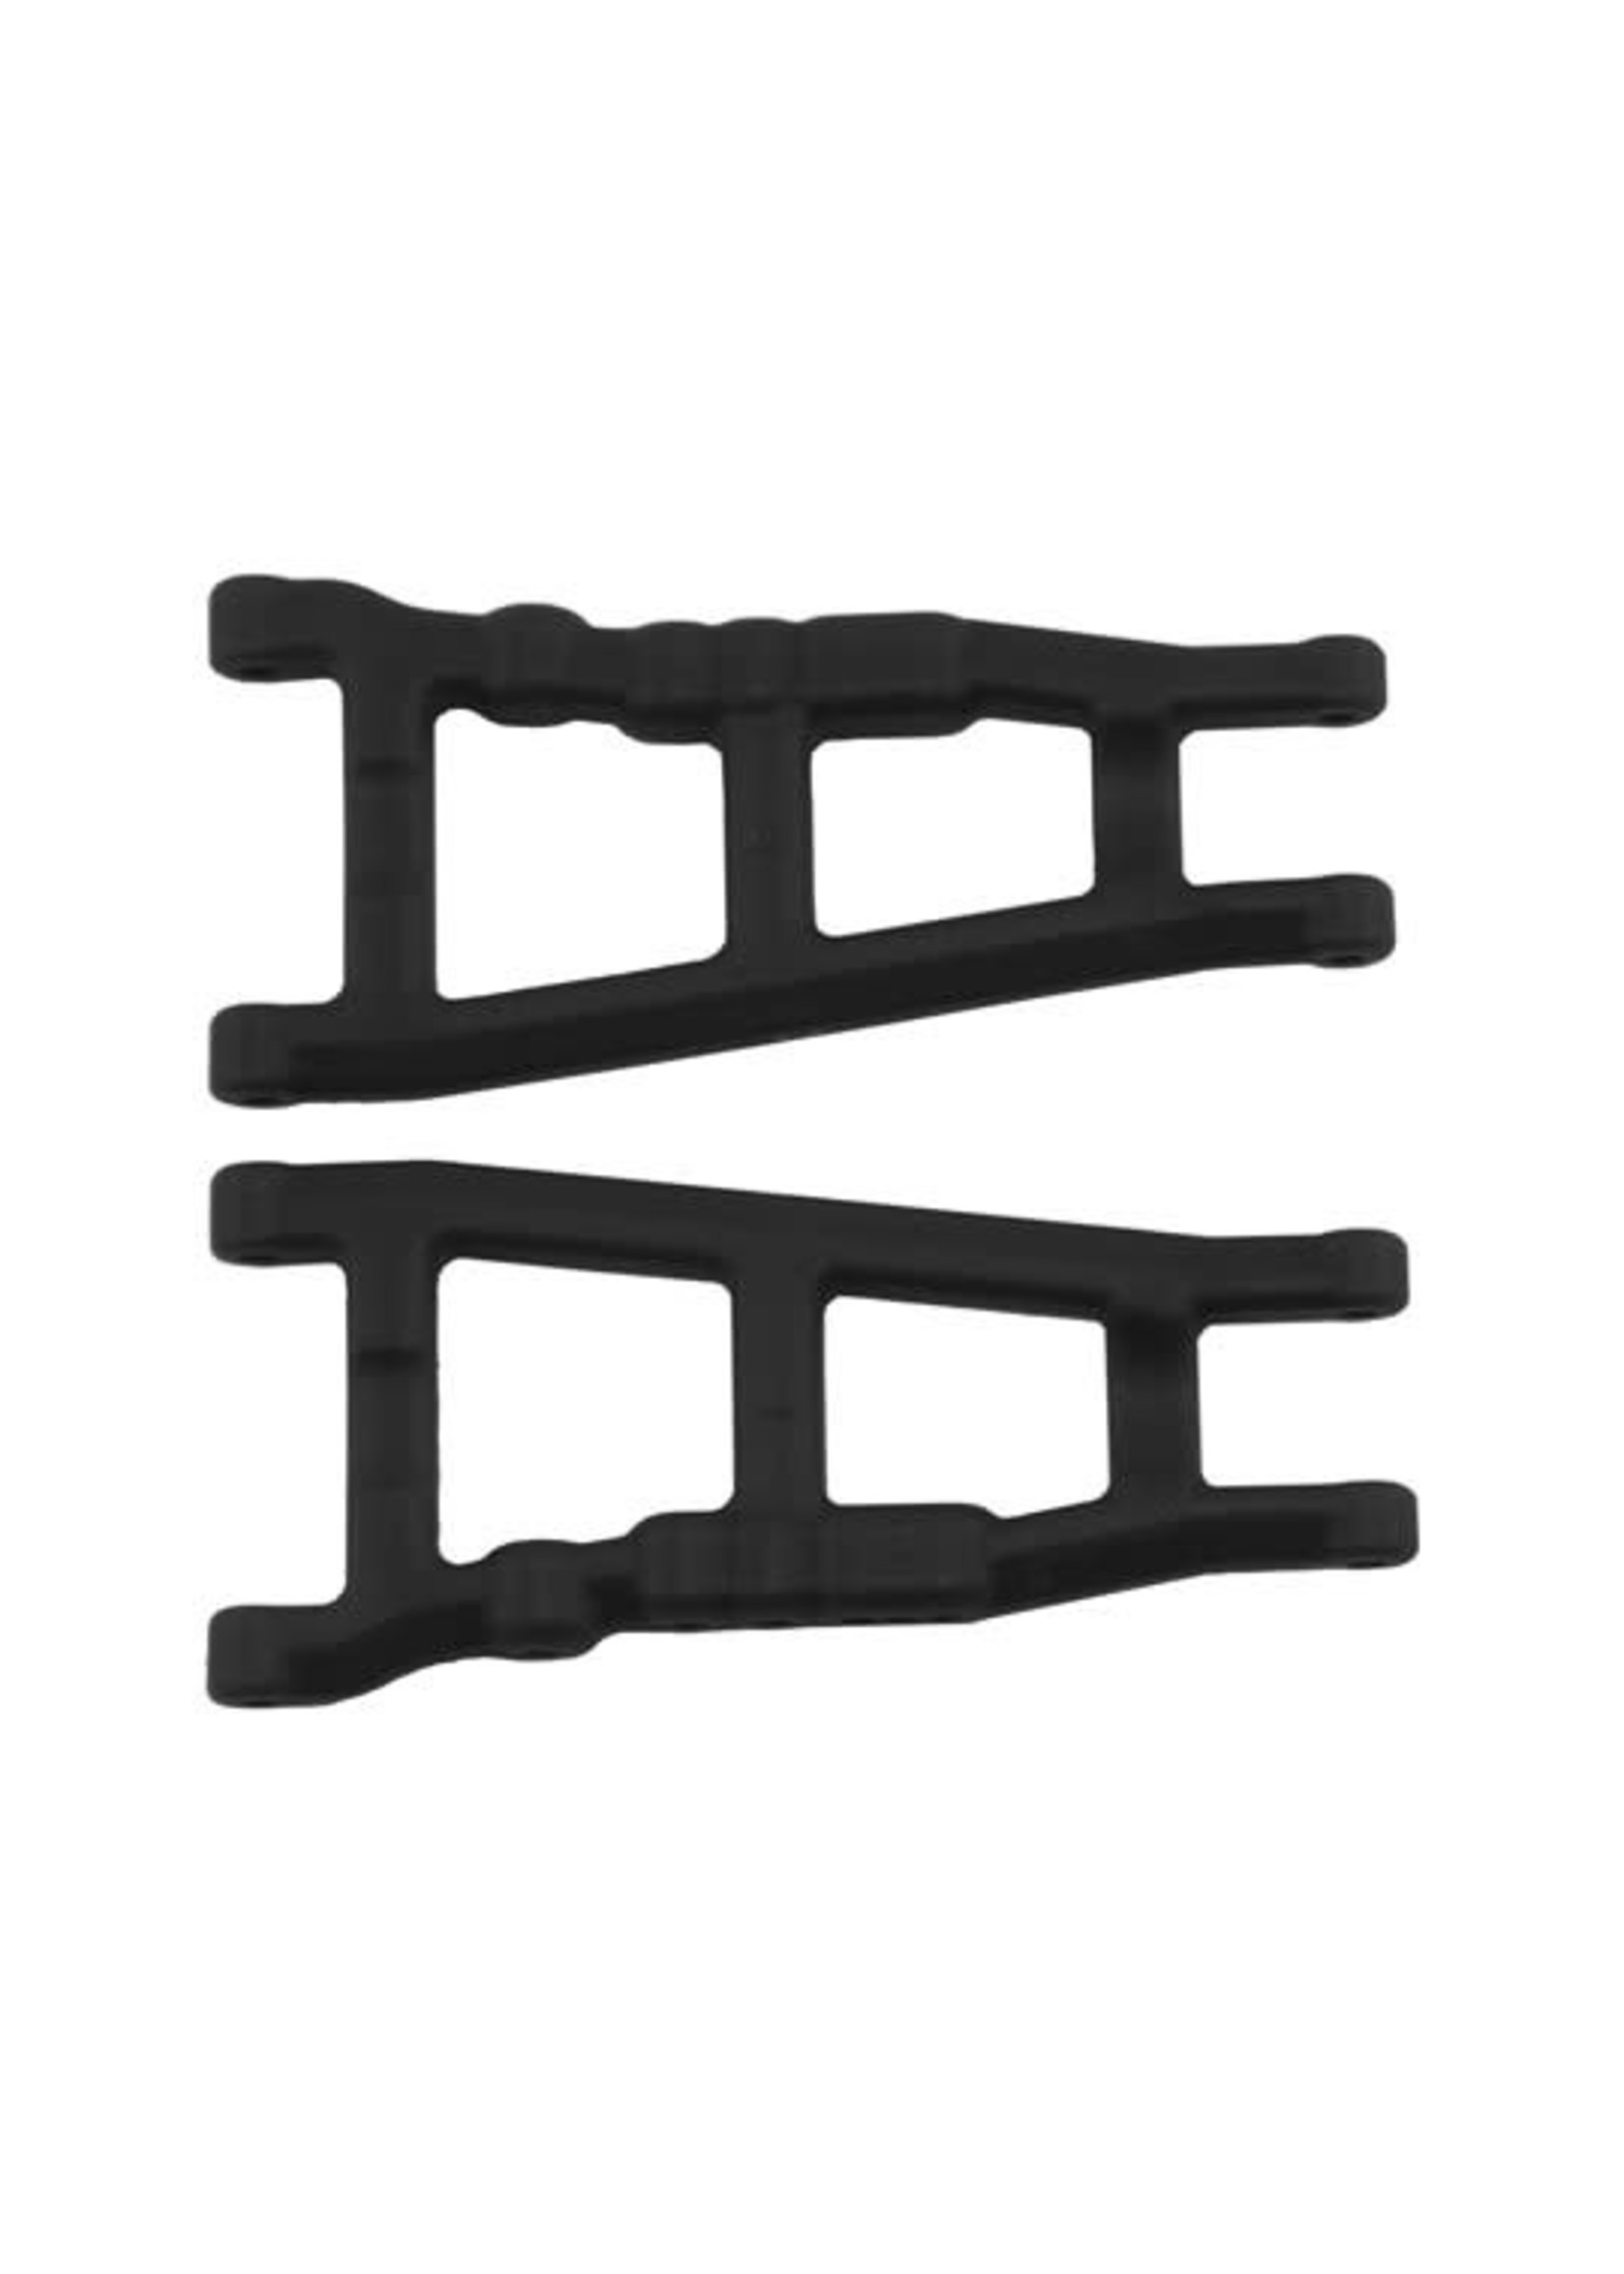 RPM RPM80702 RPM Front or Rear A-Arms for Traxxas Slash 4x4 and Rustler 4x4, Black